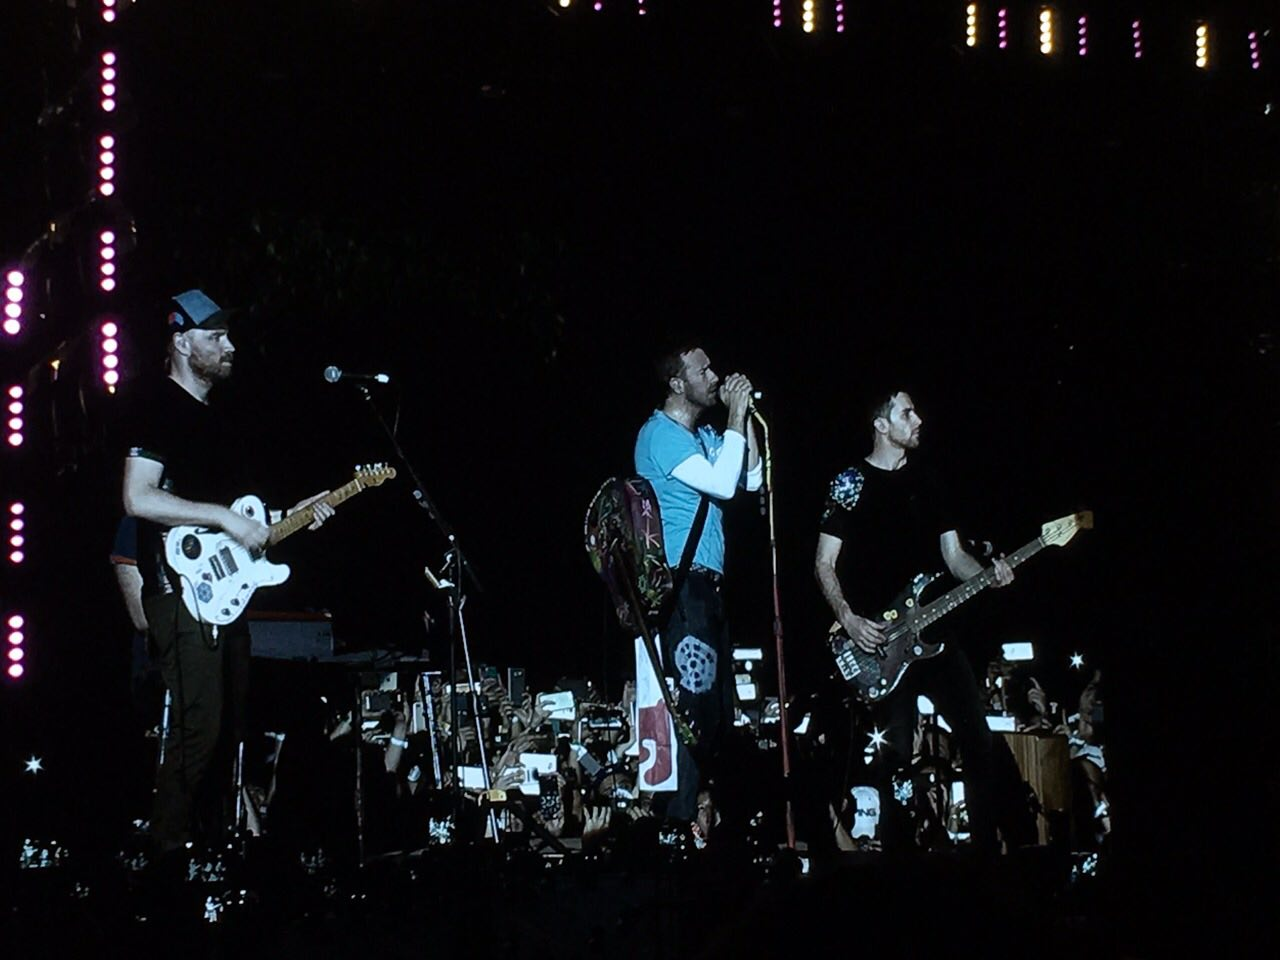 WATCH NOW: Coldplay Rocks Manila as Witnessed by the One Music Army!